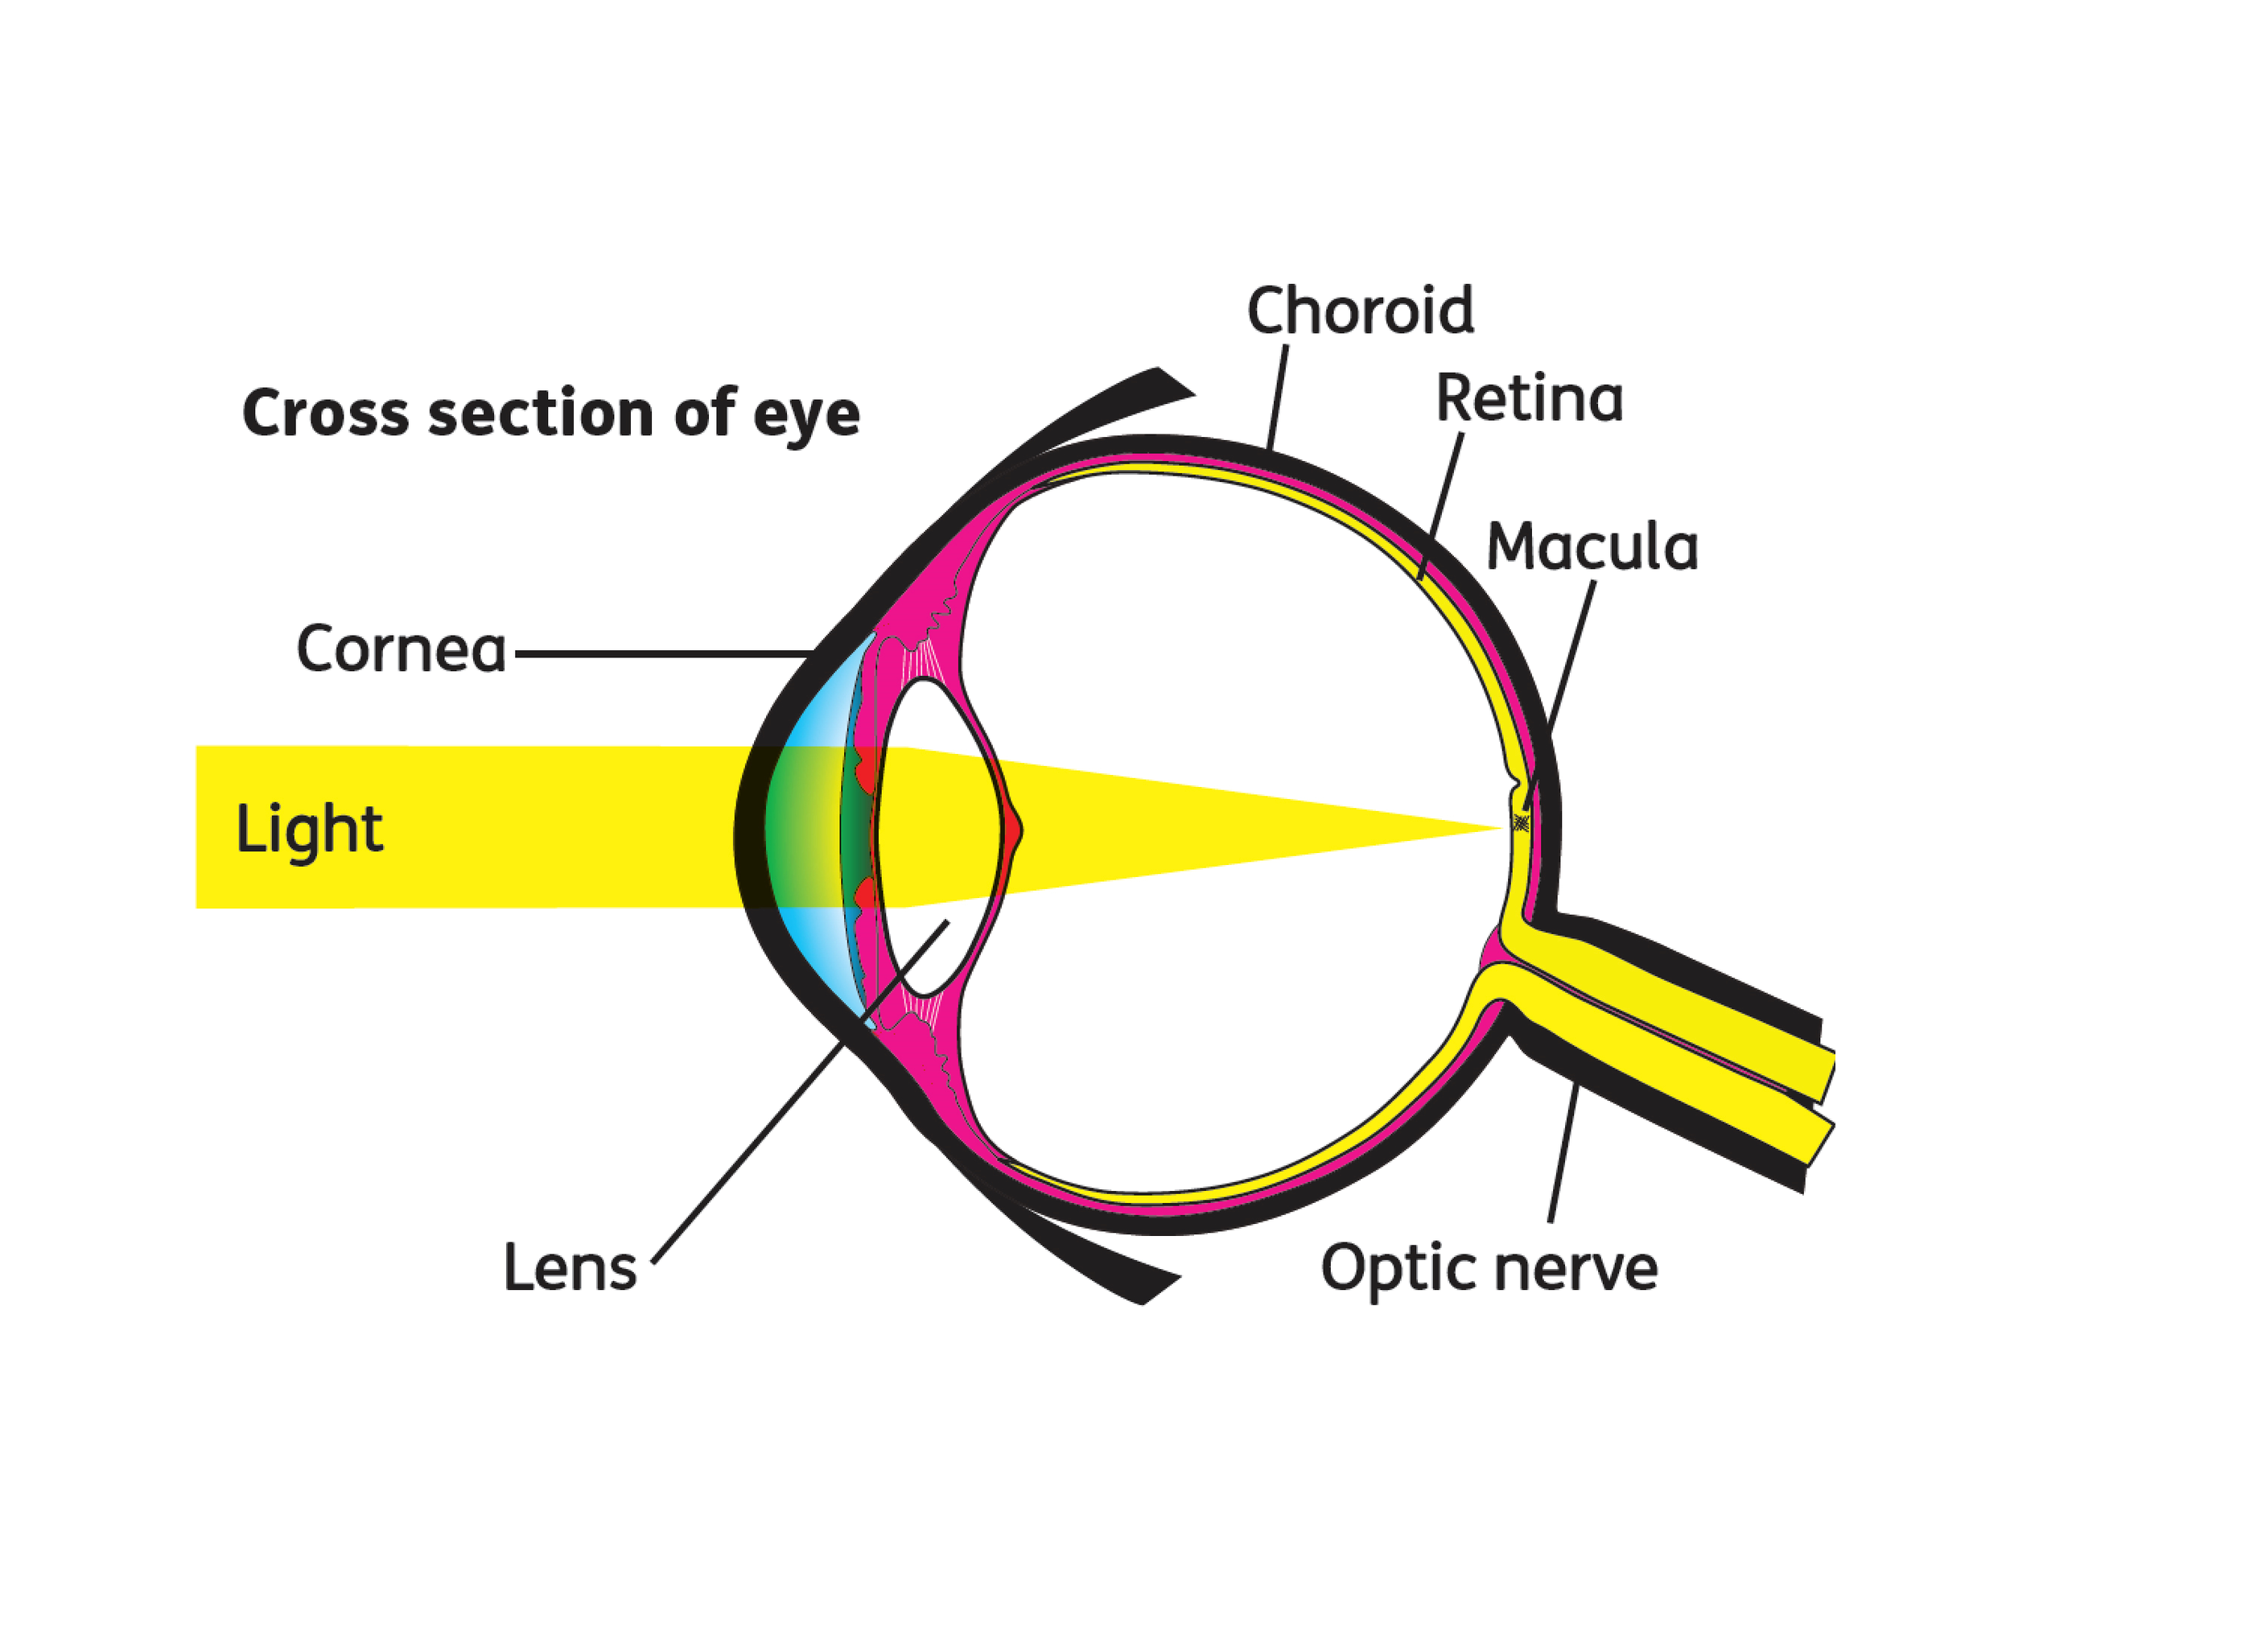 Lets talk about Macular degeneration